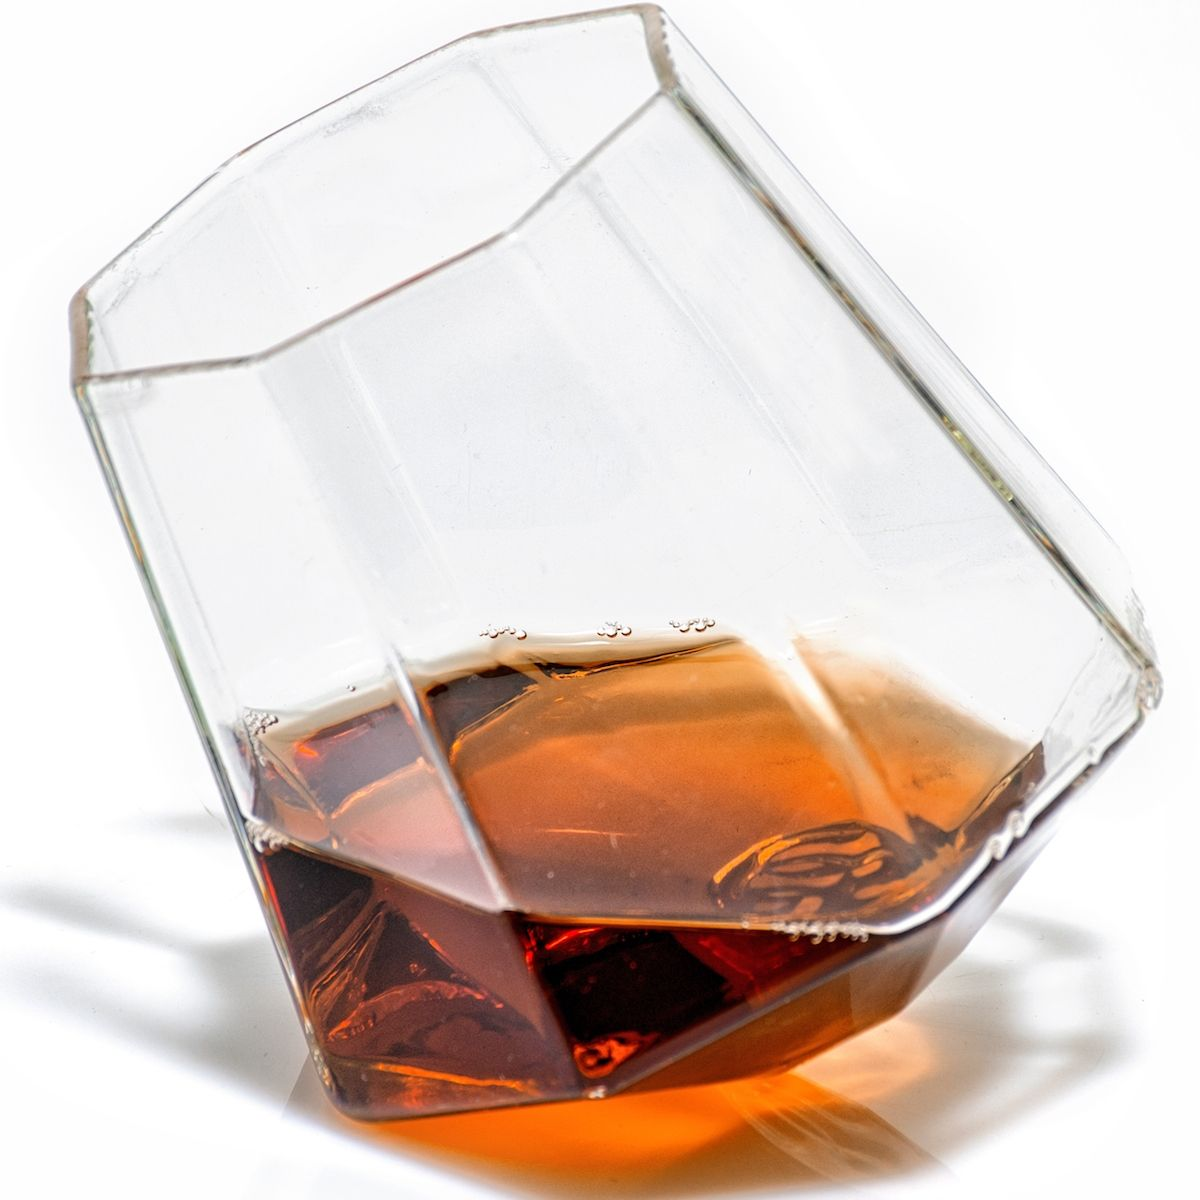 Diamond-shaped whiskey glasses